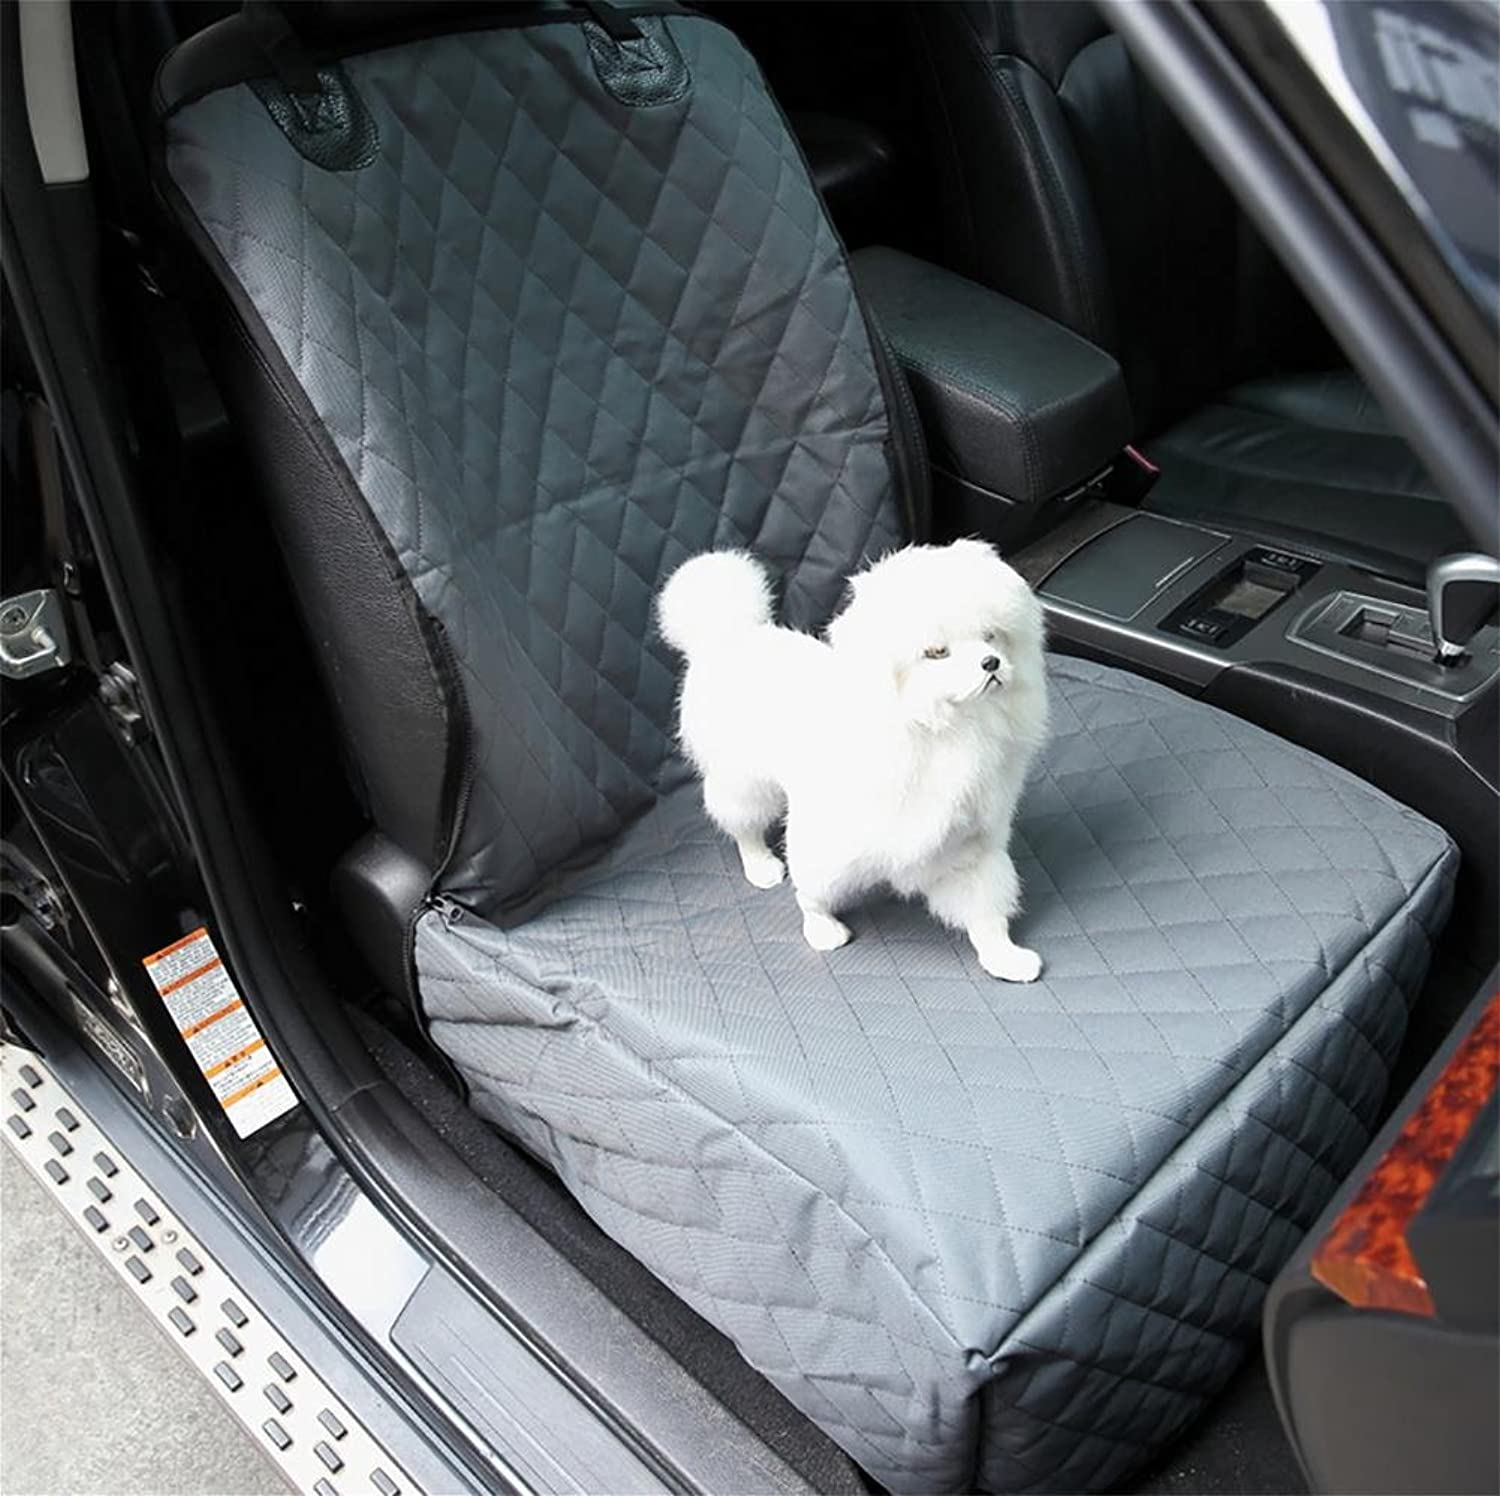 LOHUA Pet Front Seat Cover for Cars  Universal, WaterProof & Nonslip Backing